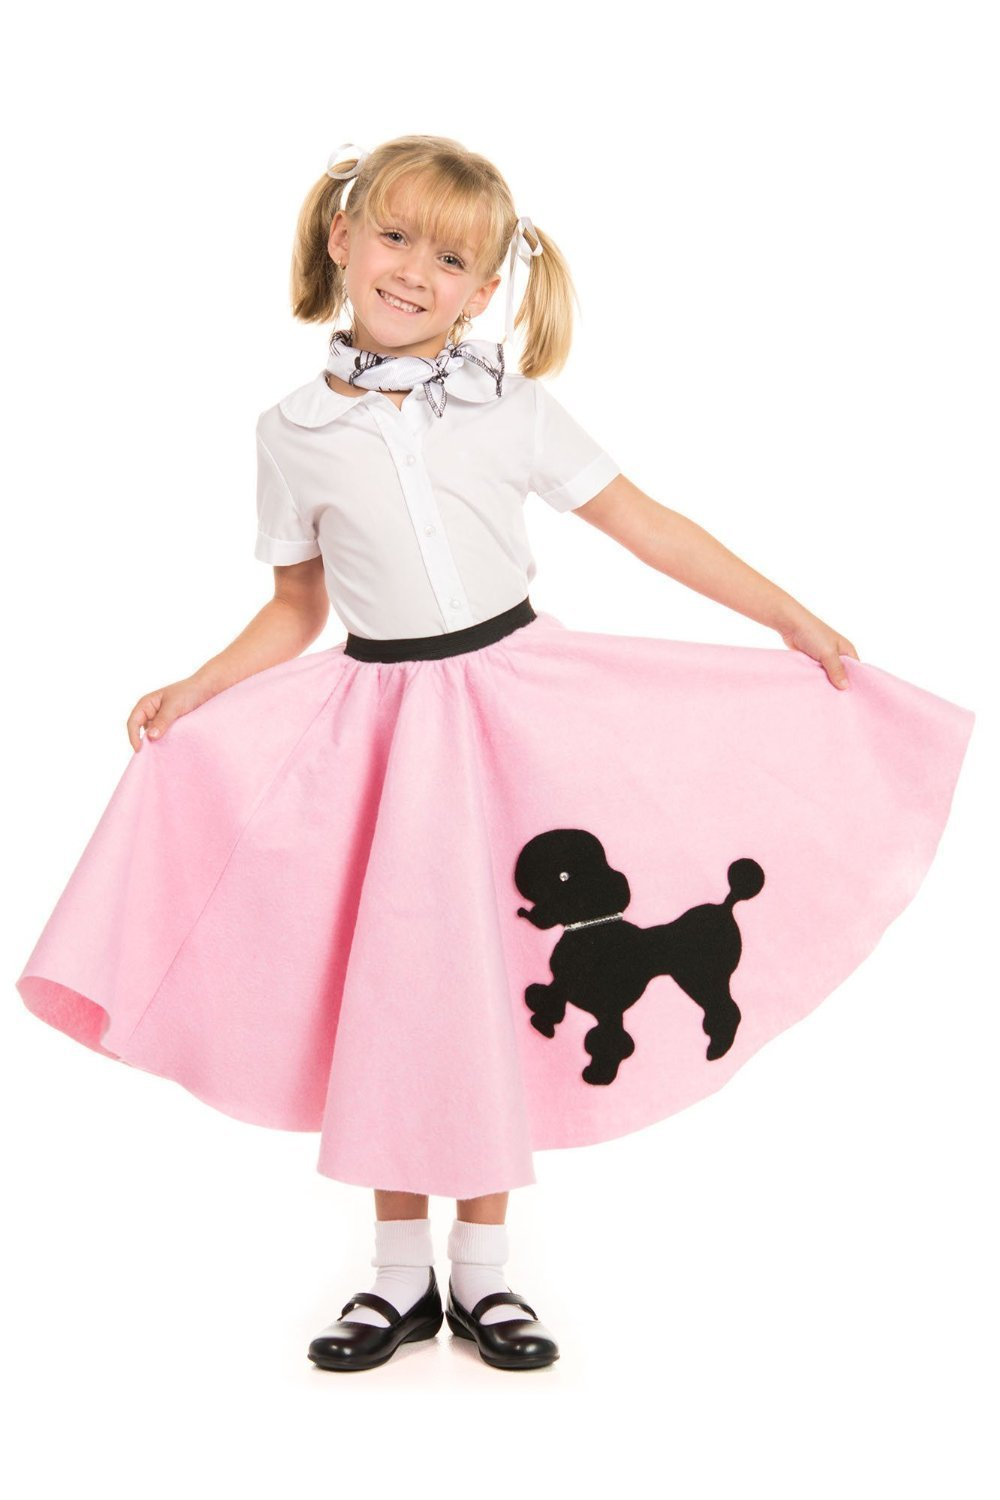 Kids 1950s Clothing & Costumes: Girls, Boys, Toddlers Poodle Skirt with Musical Note printed Scarf by Kidcostumes $14.98 AT vintagedancer.com